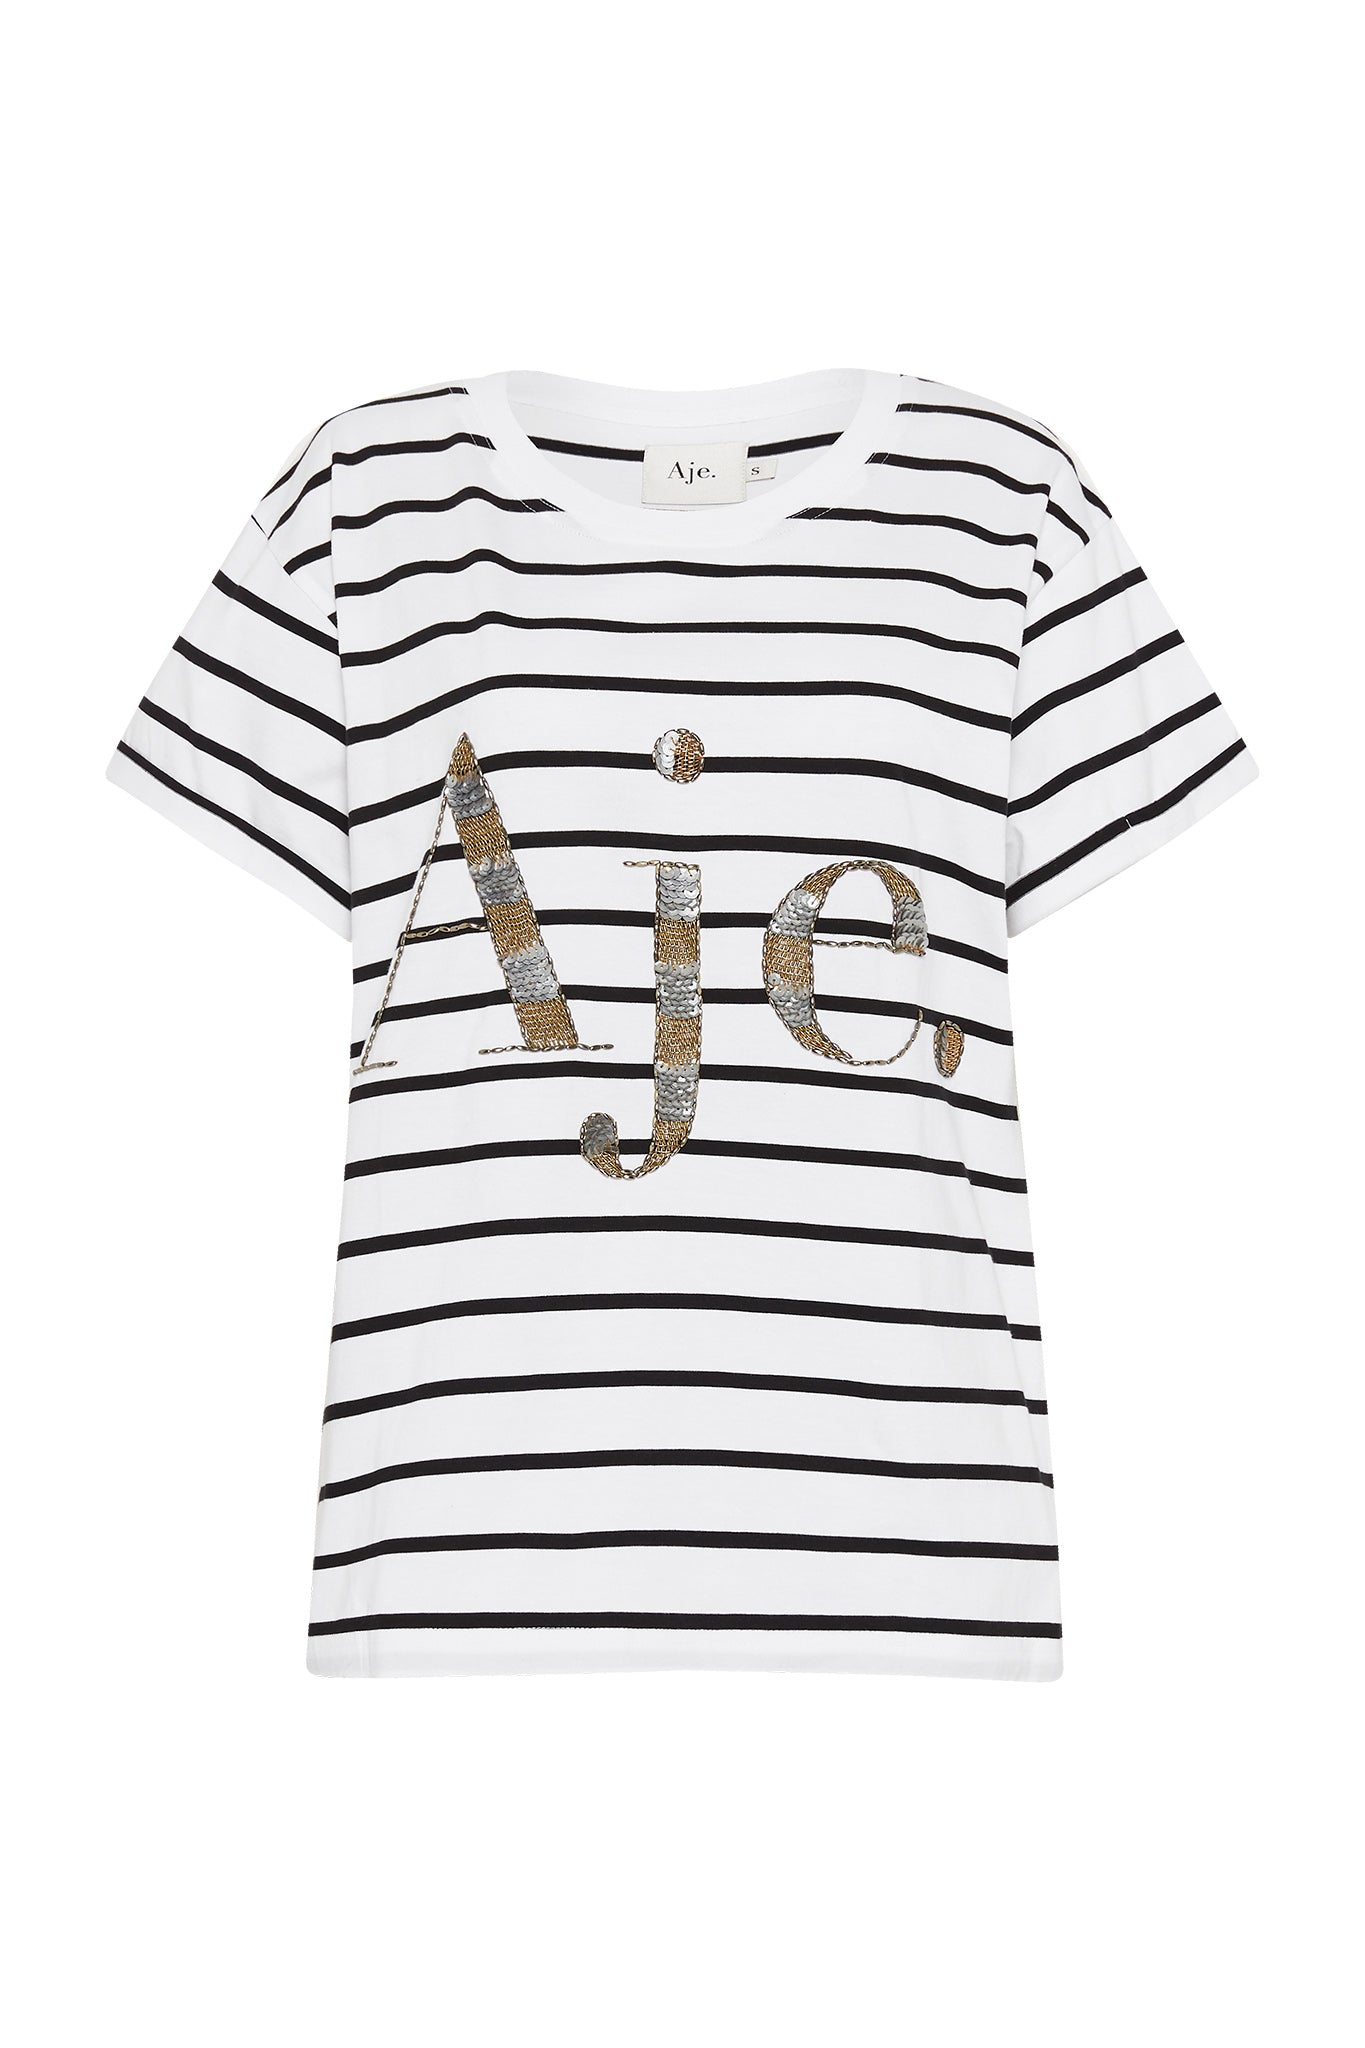 Aje Stripe Logo Tee Product View